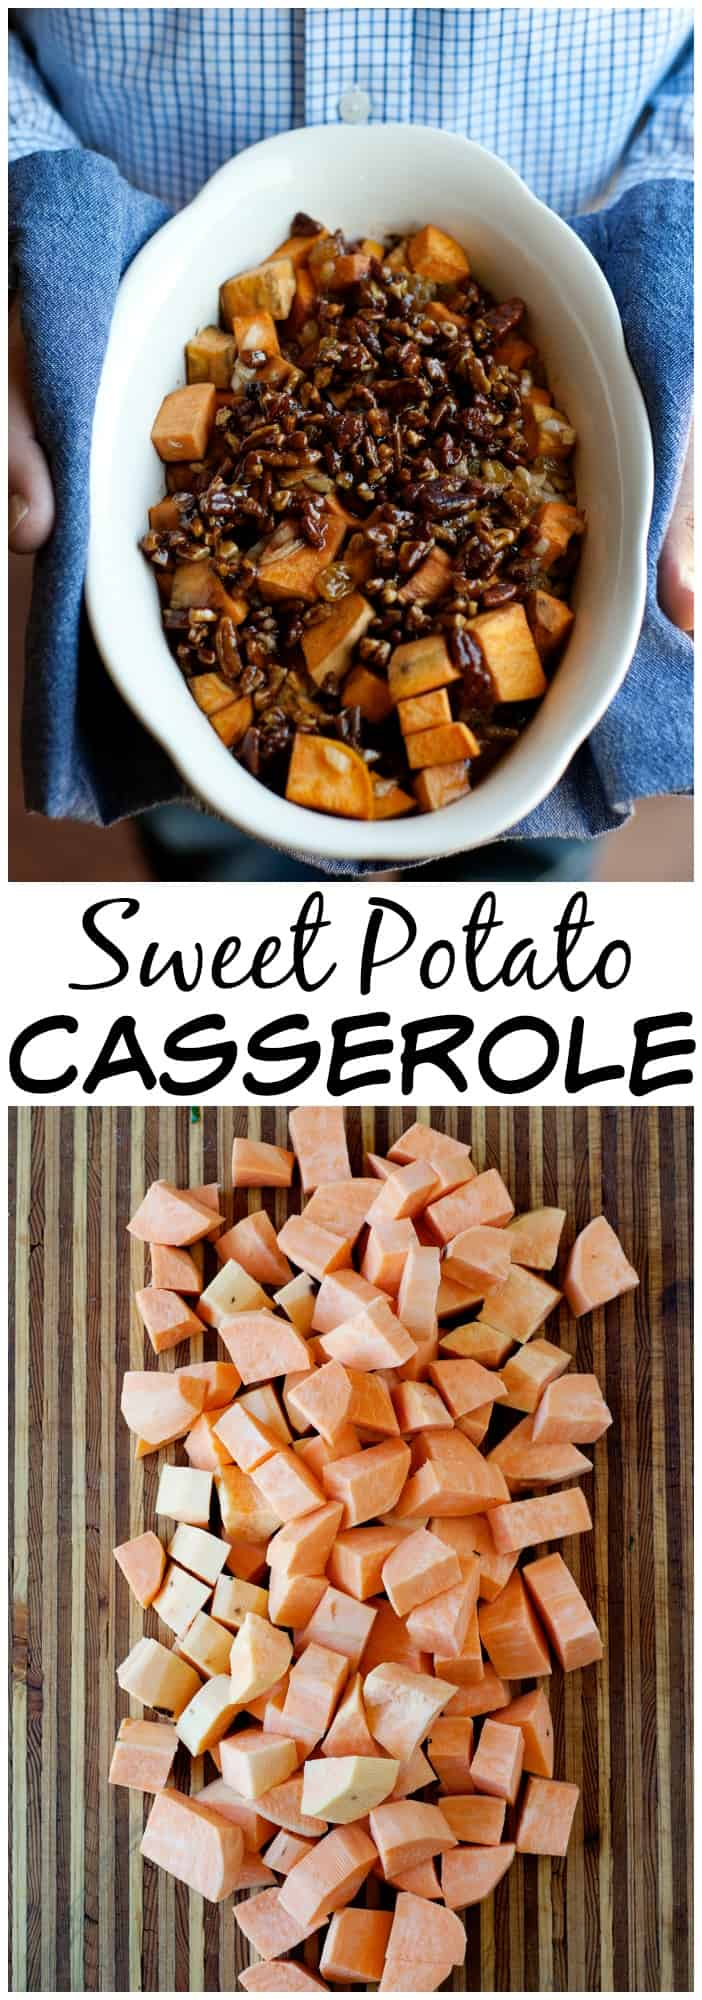 This paleo sweet potato casserole with pecans is one the entire family will love. No refined sugars, no marshmallows, just real good ingredients.